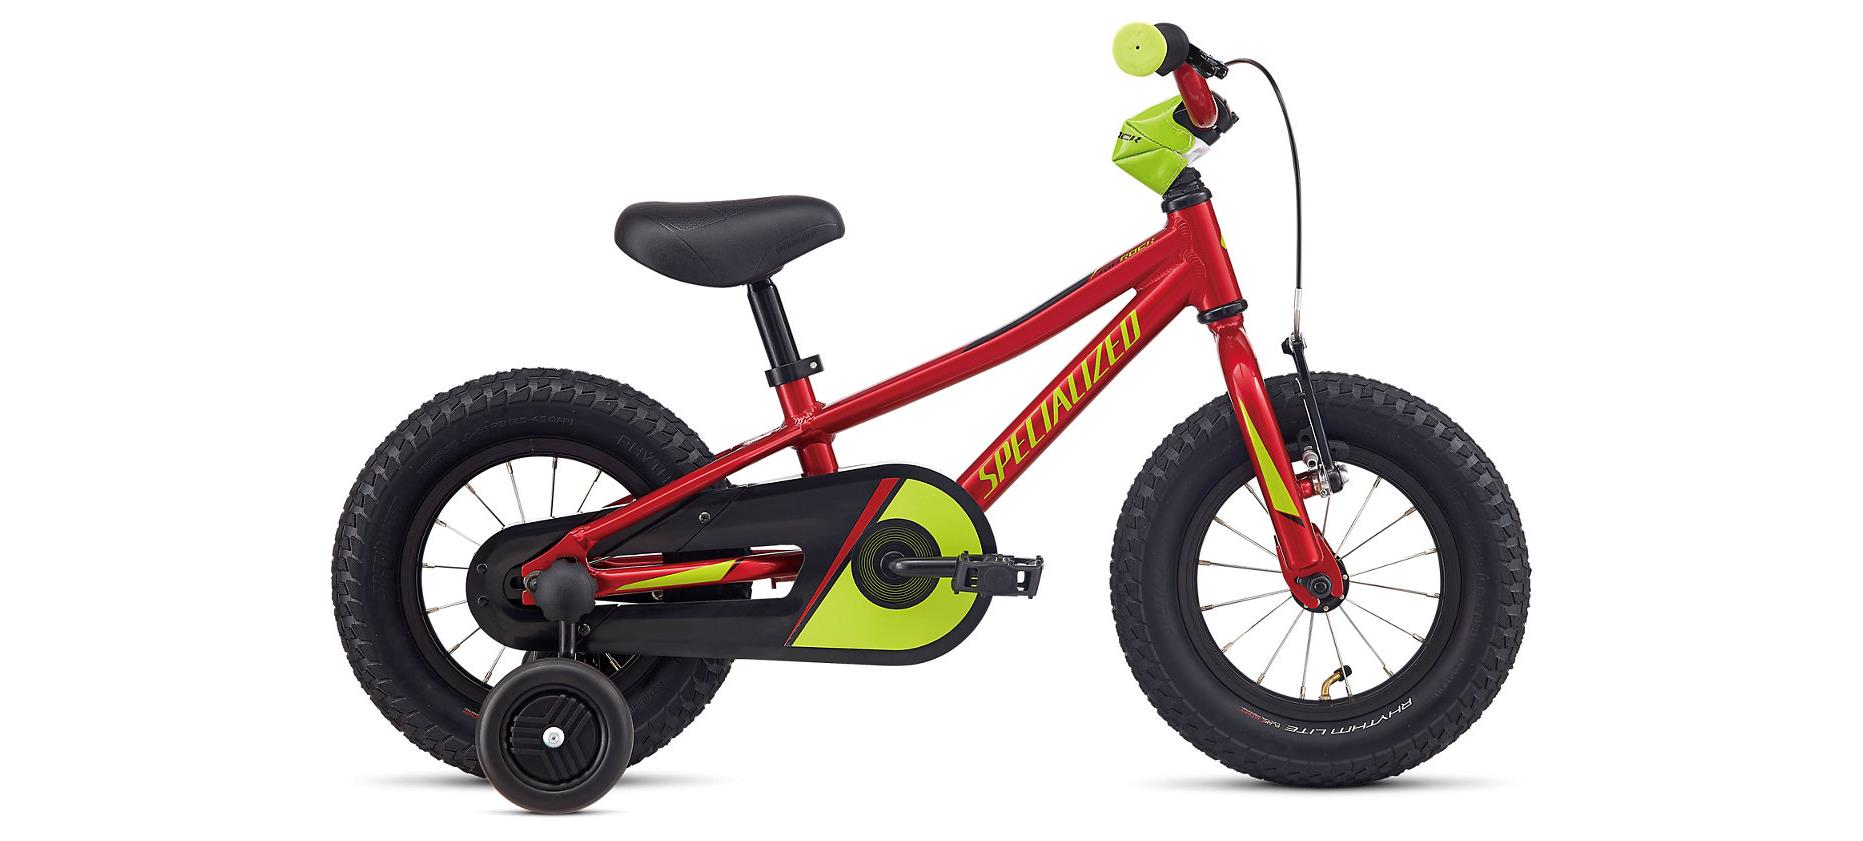 Specialized Riprock Coaster 12 Candy Red/Hyper Green 2020 - 12 -  12